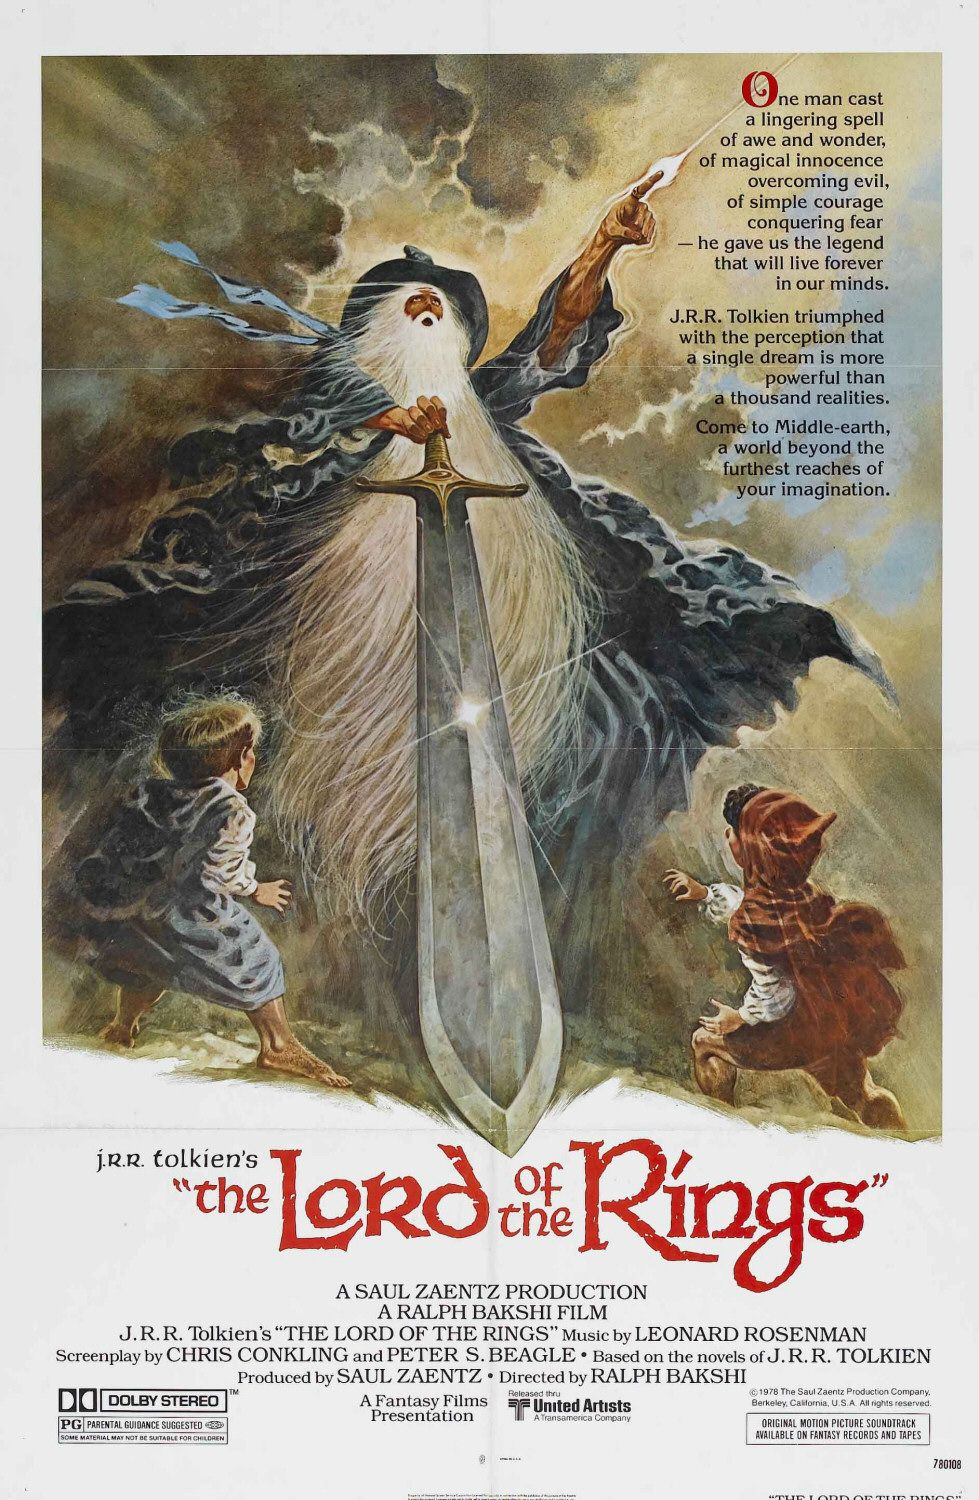 LORD-OF-THE-RINGS_Bakshi_poster